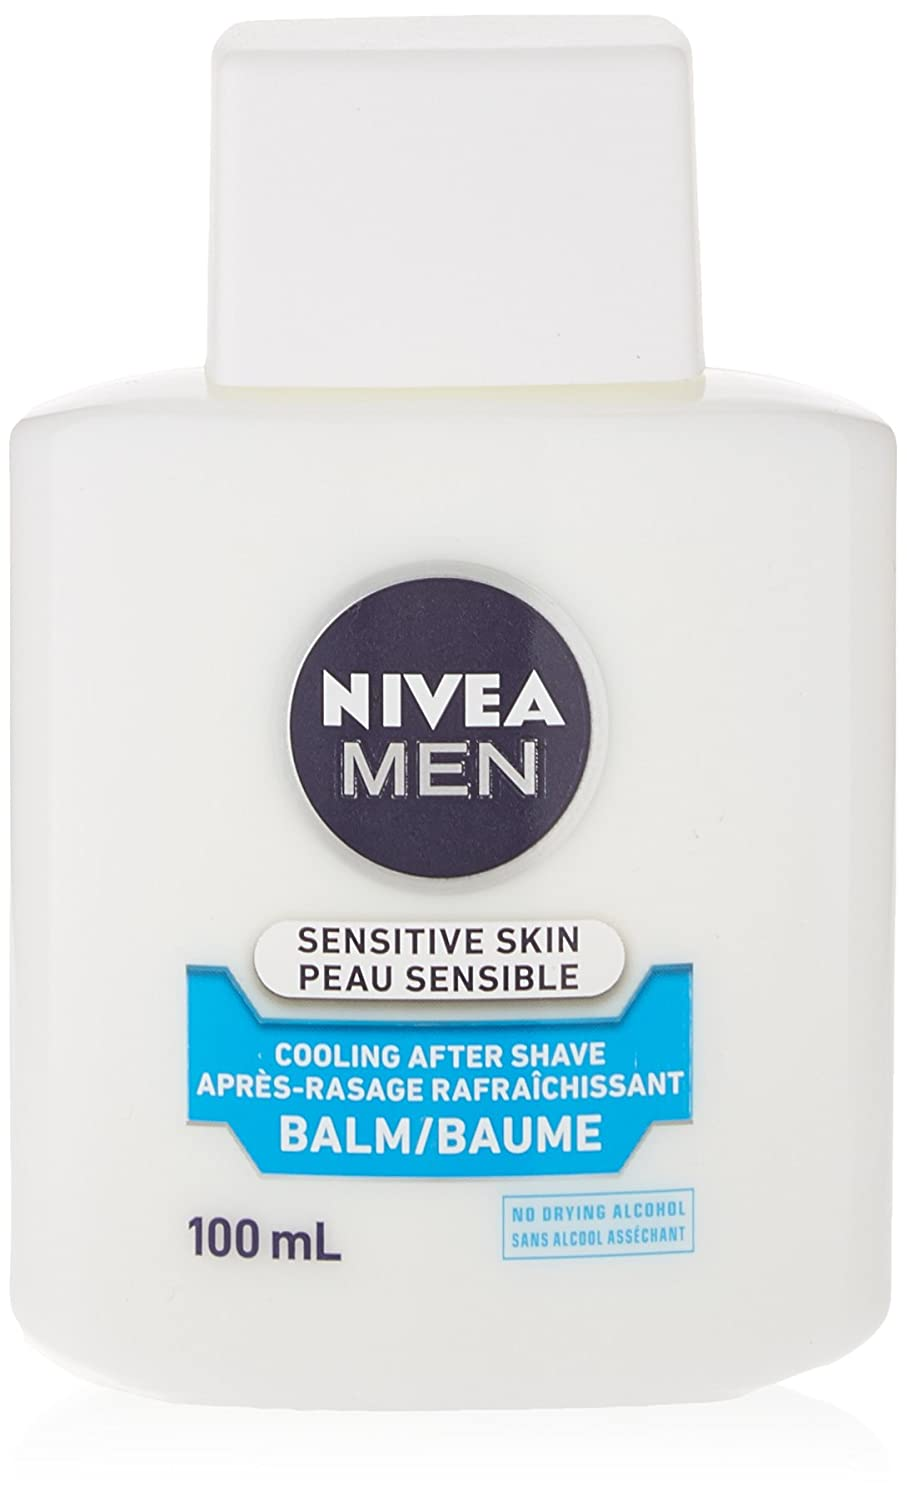 NIVEA MEN Protect & Care After Shave Balm, 100 mL bottle 072140813000